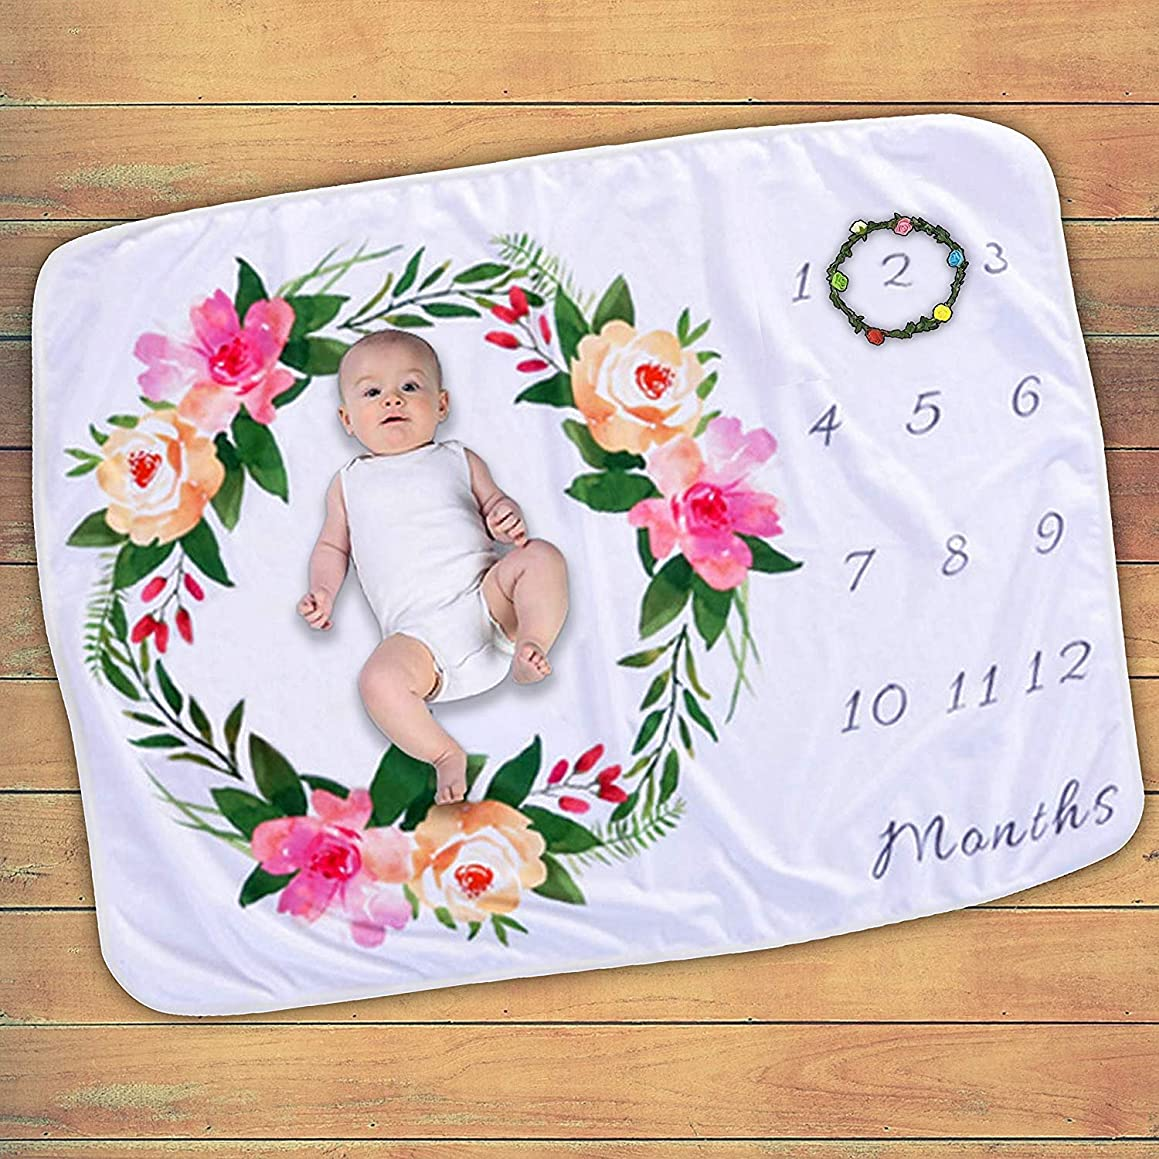 Baby Month Blanket, Soft and Not Easy to Wrinkle Material Baby Milestone Blanket, Cute and Simple Pattern Photography Backdrop Photo Prop for Newborn Boy & Girl (Floral)